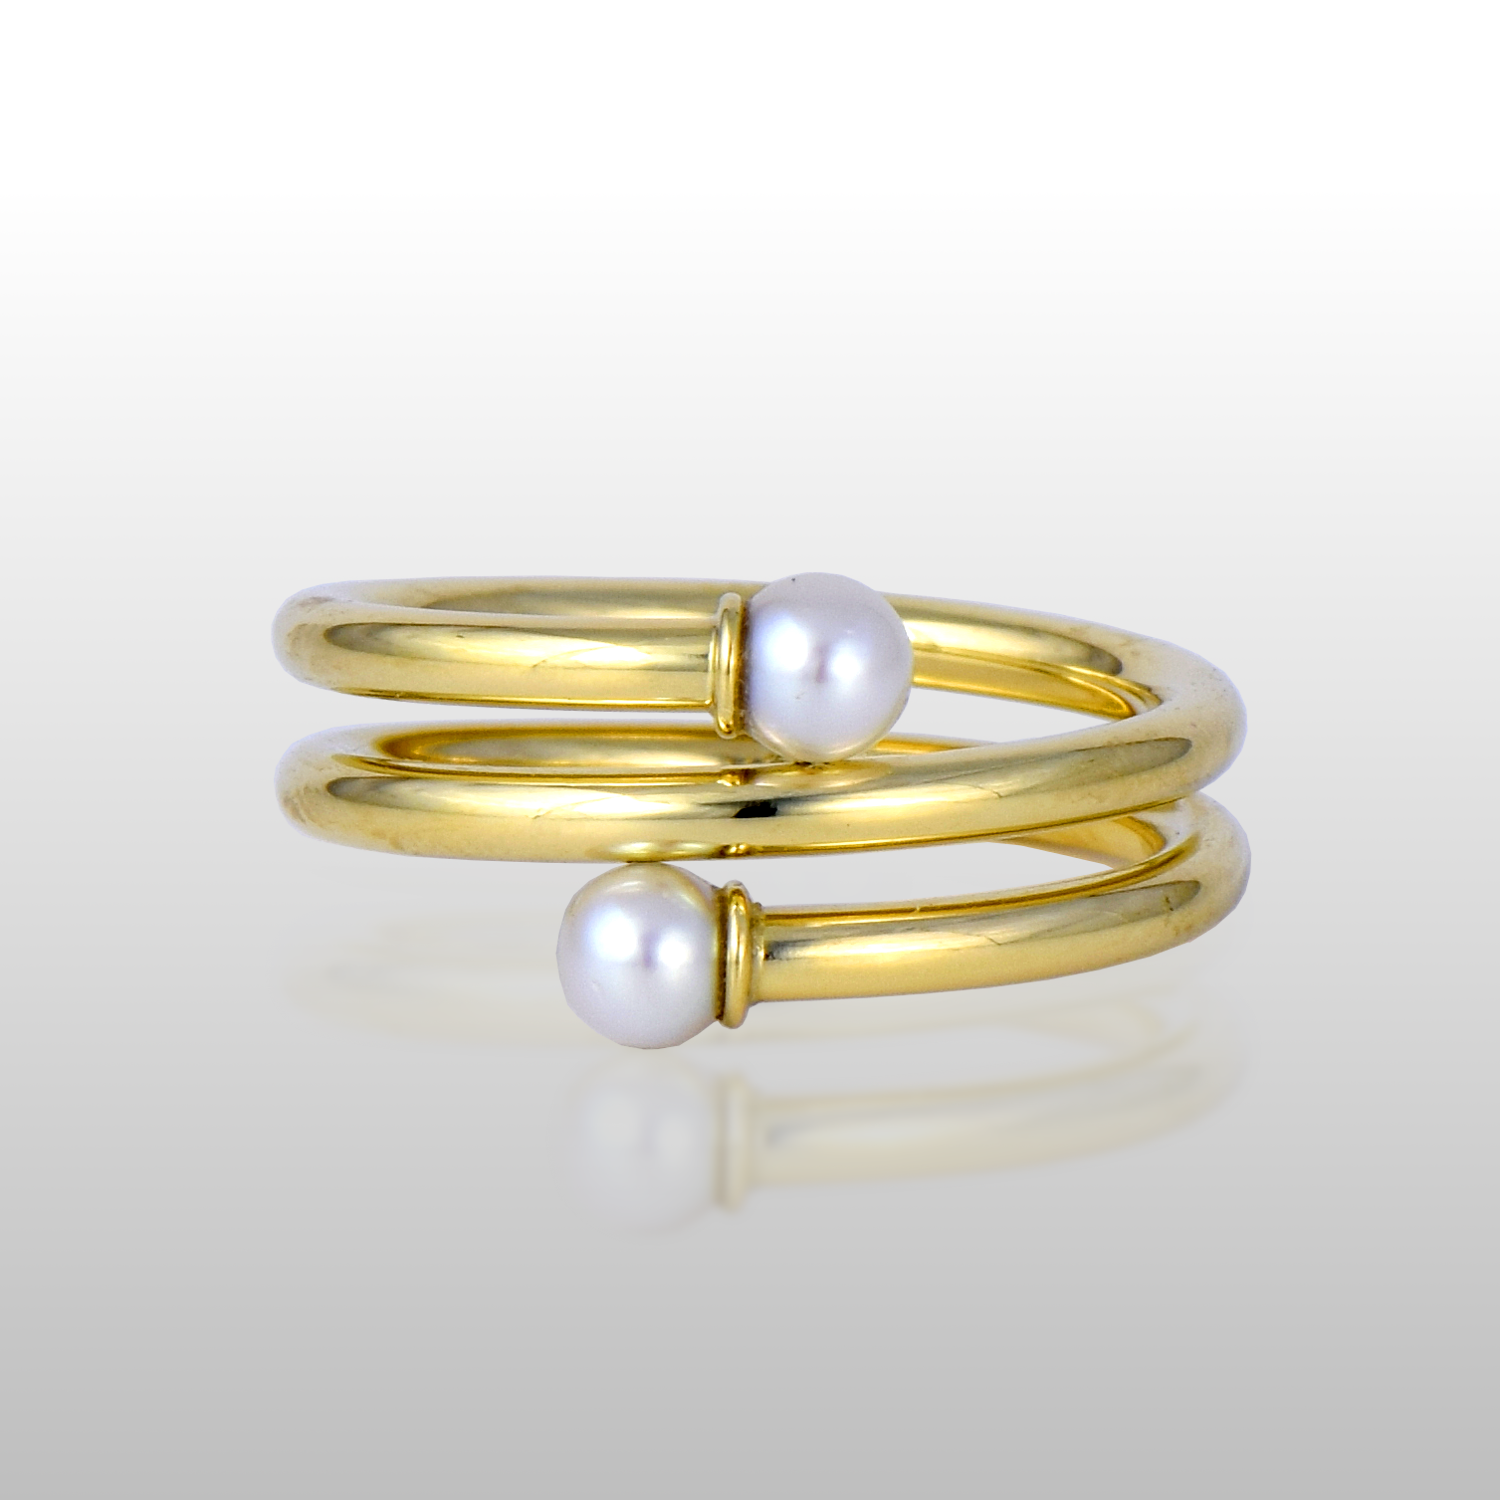 Small Spiral Ring in 18k Gold with Akoya Pearls by Pratima Design Fine Art Jewelry